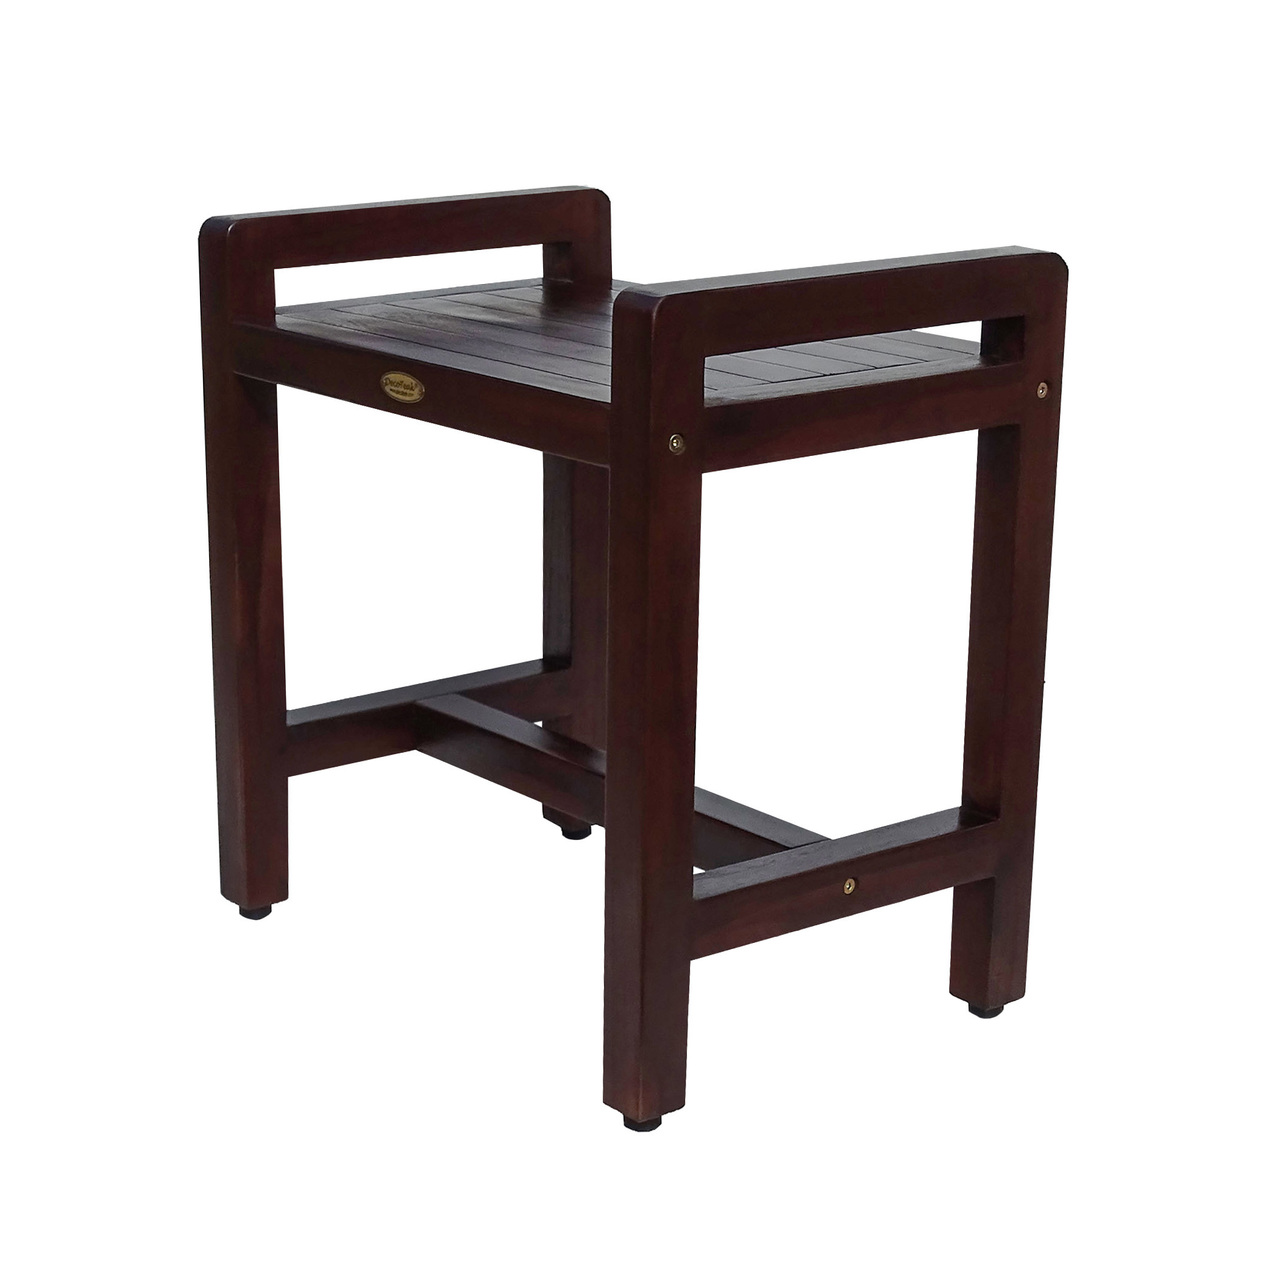 Super Eleganto 18 Inch Teak Shower Stool With Liftaide Arms Camellatalisay Diy Chair Ideas Camellatalisaycom